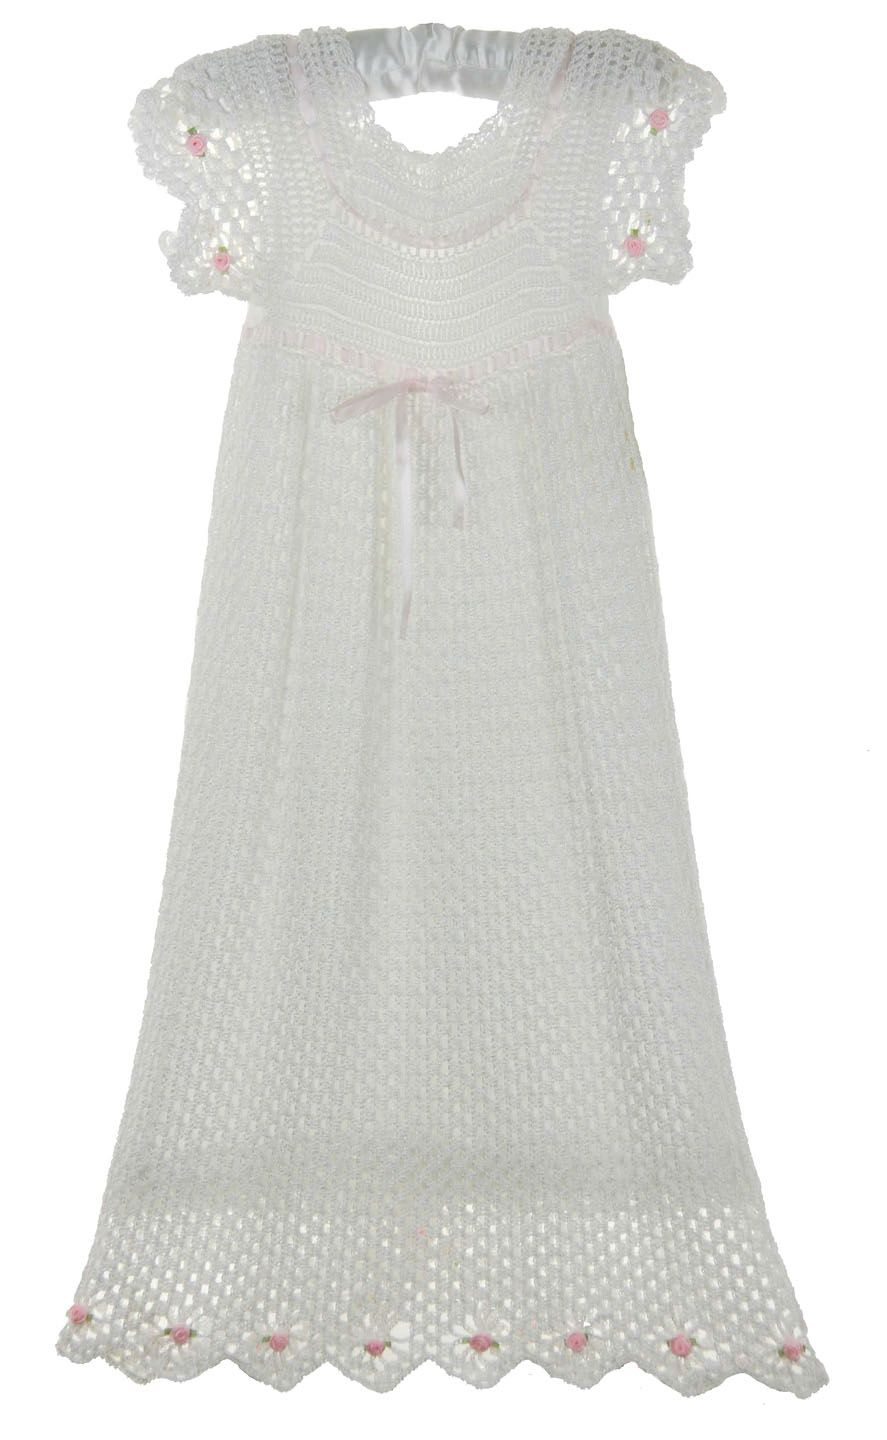 NEW Exquisite Custom Crocheted White Christening Gown with Pink Ribbons and Rosebuds $200.00 #ChristeningGown